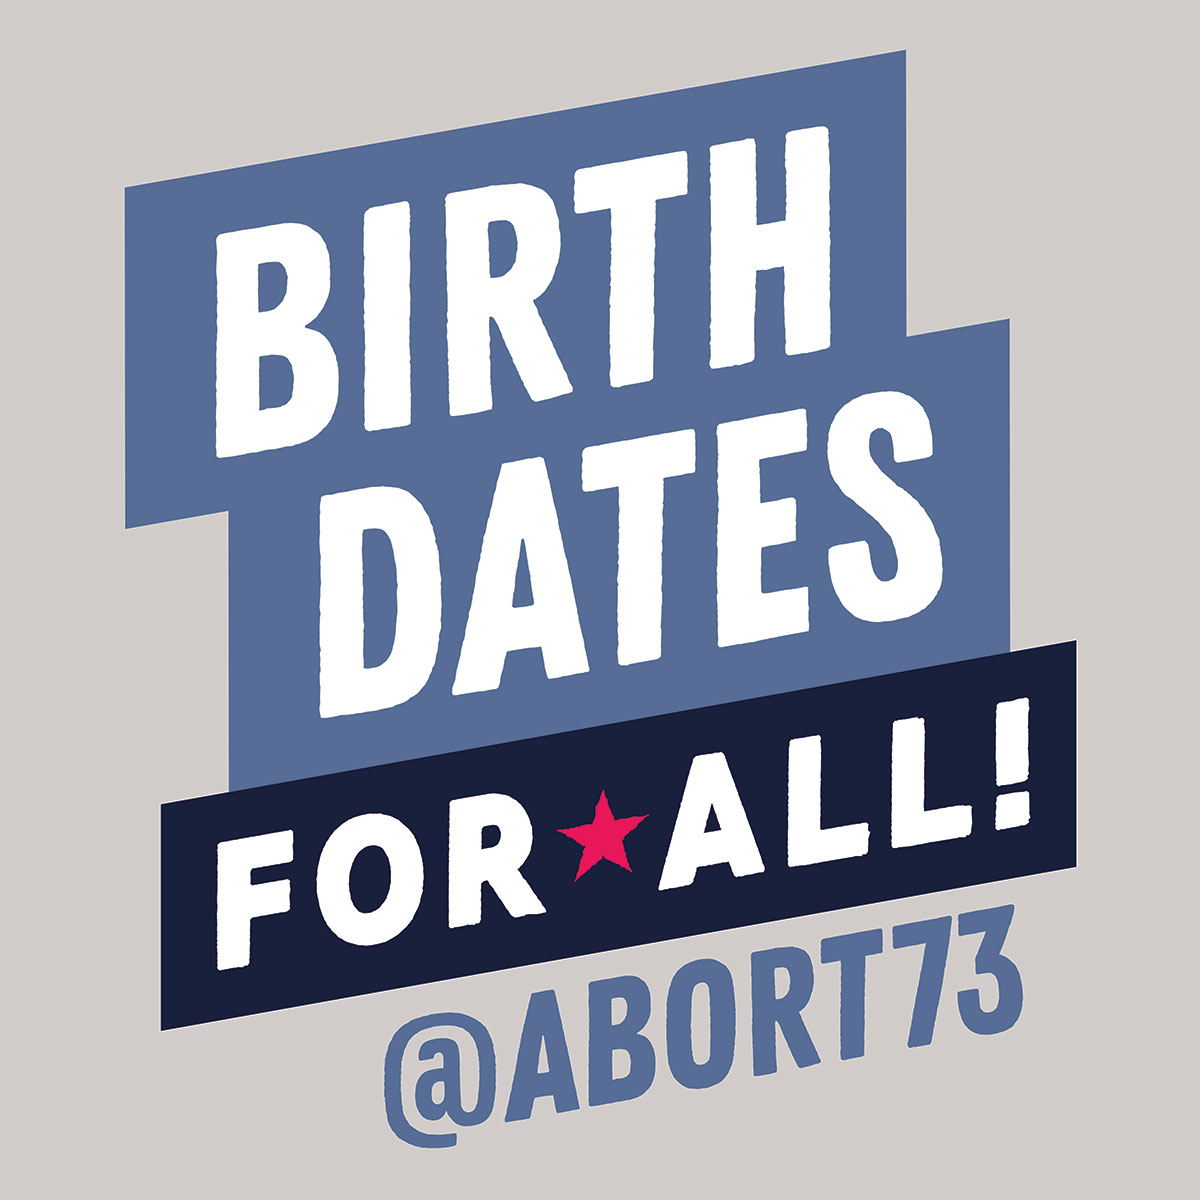 Birth Dates for All!